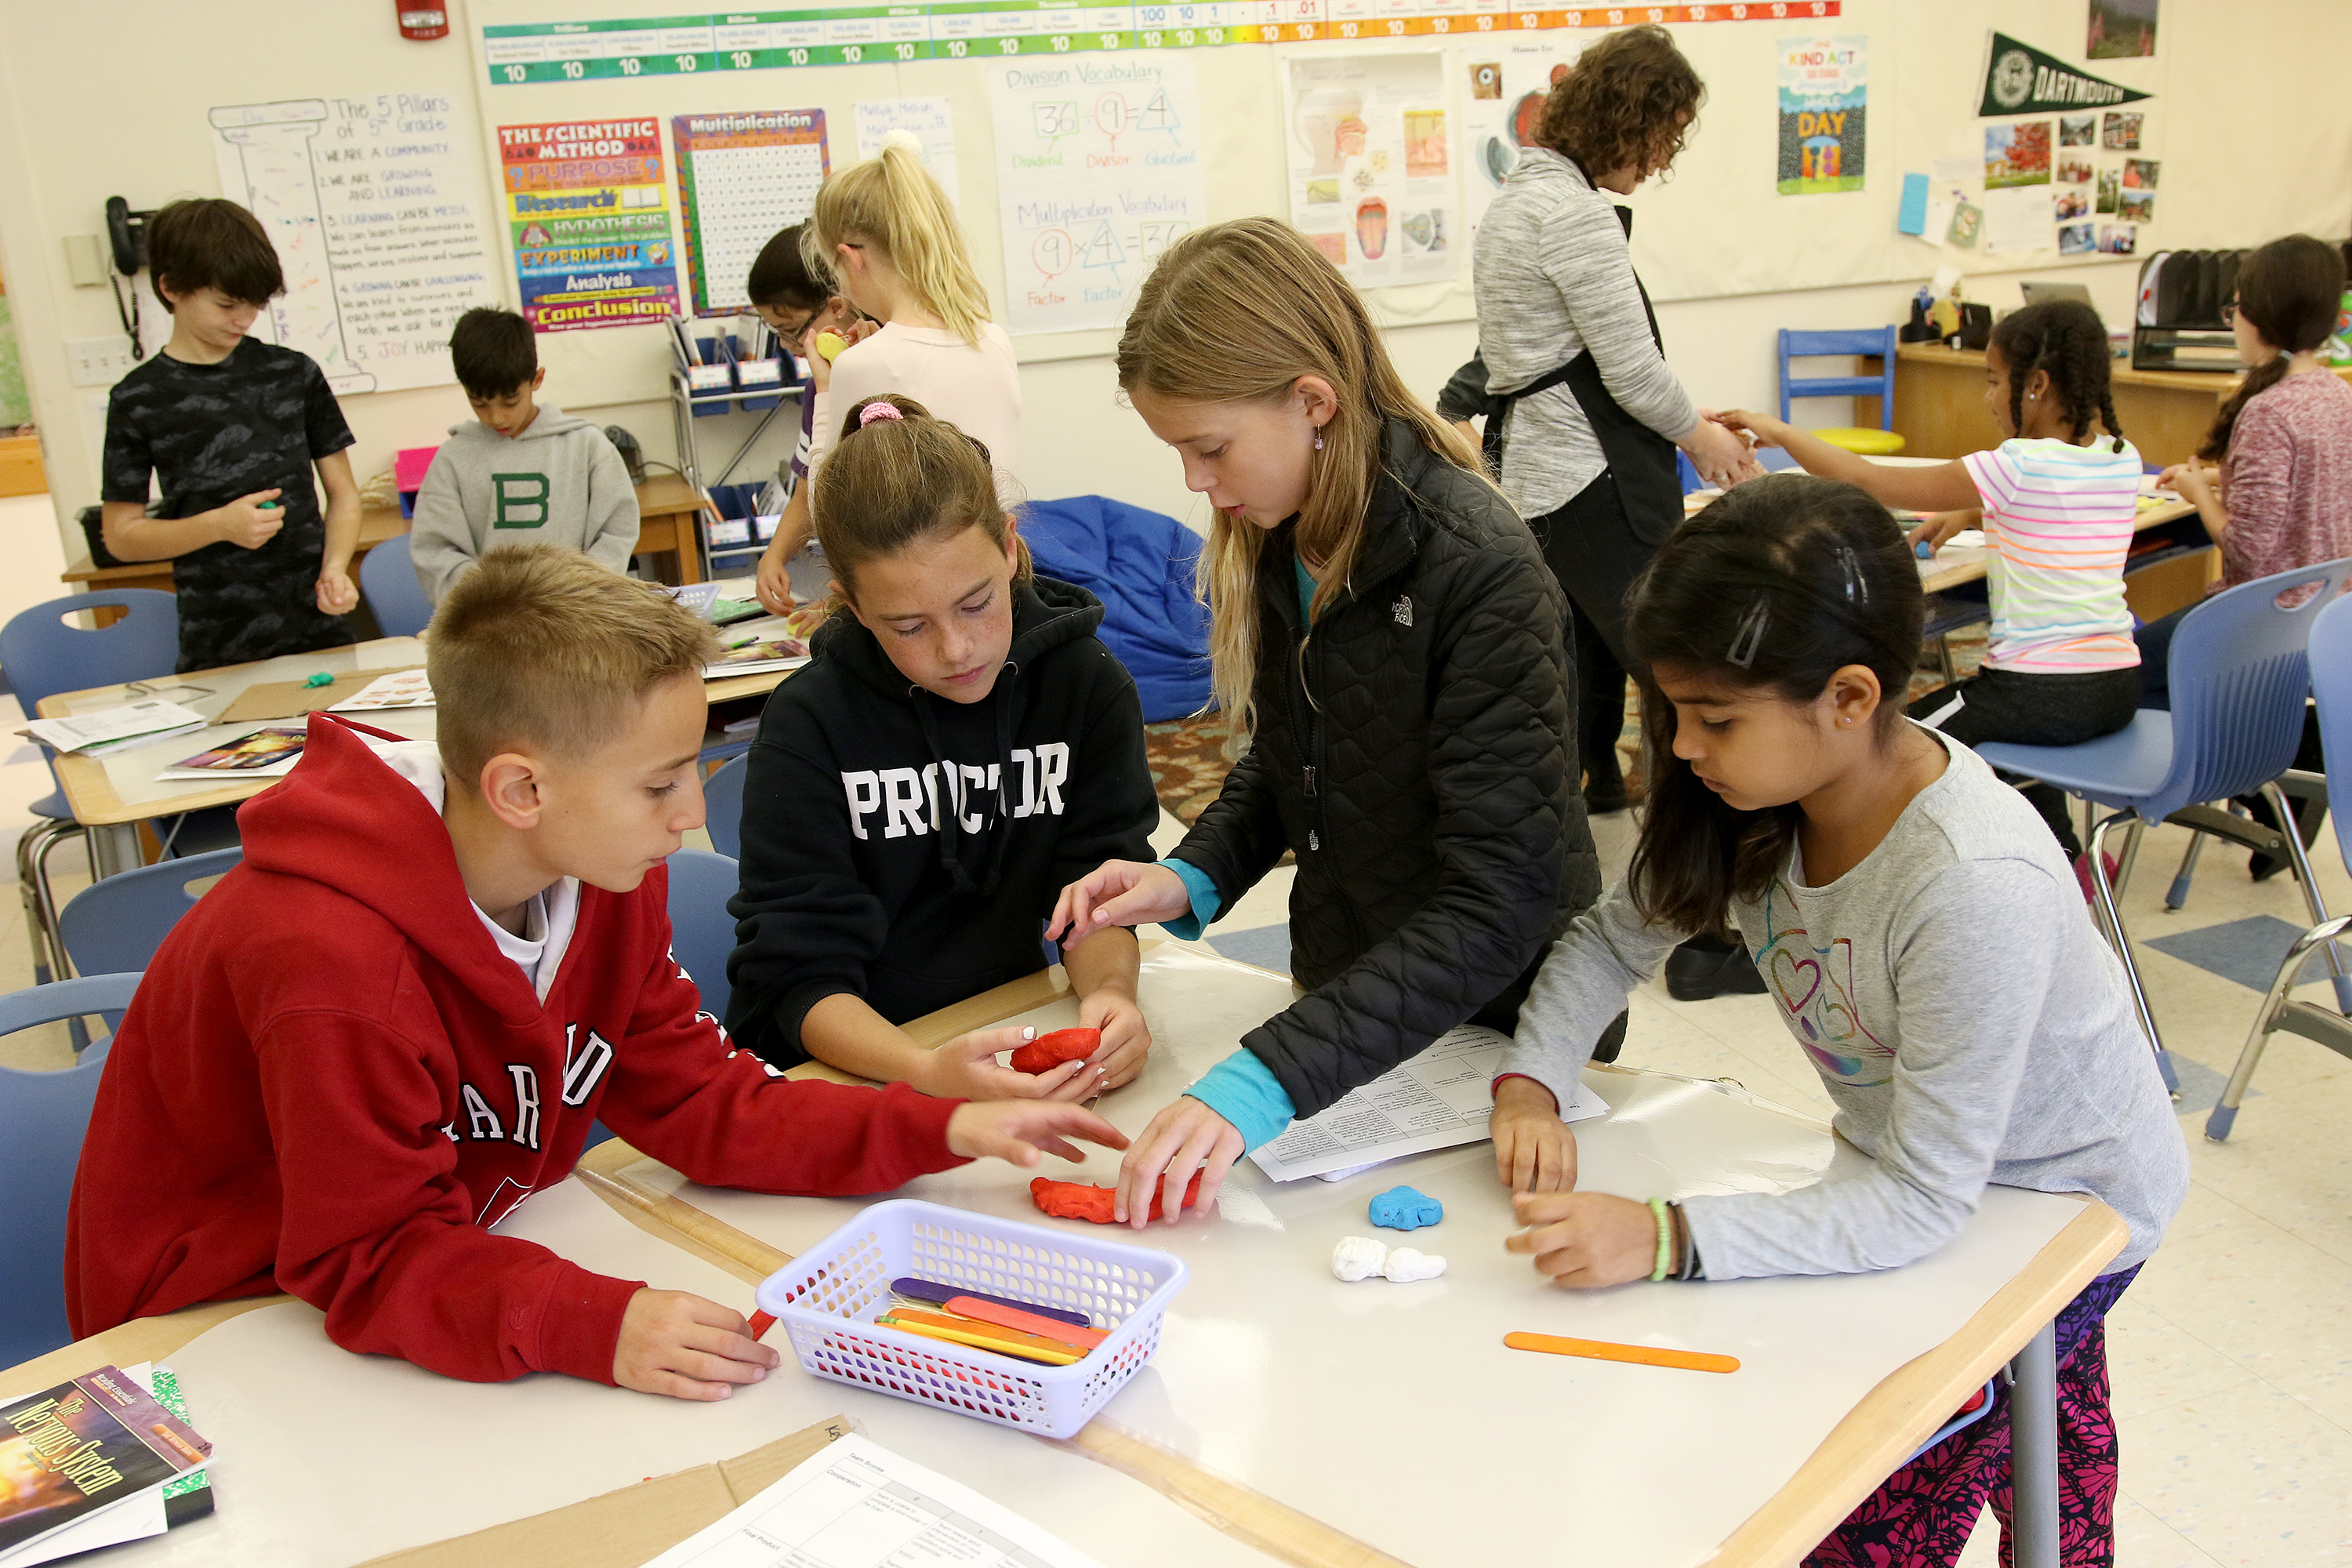 Five students collaborate on a writing project